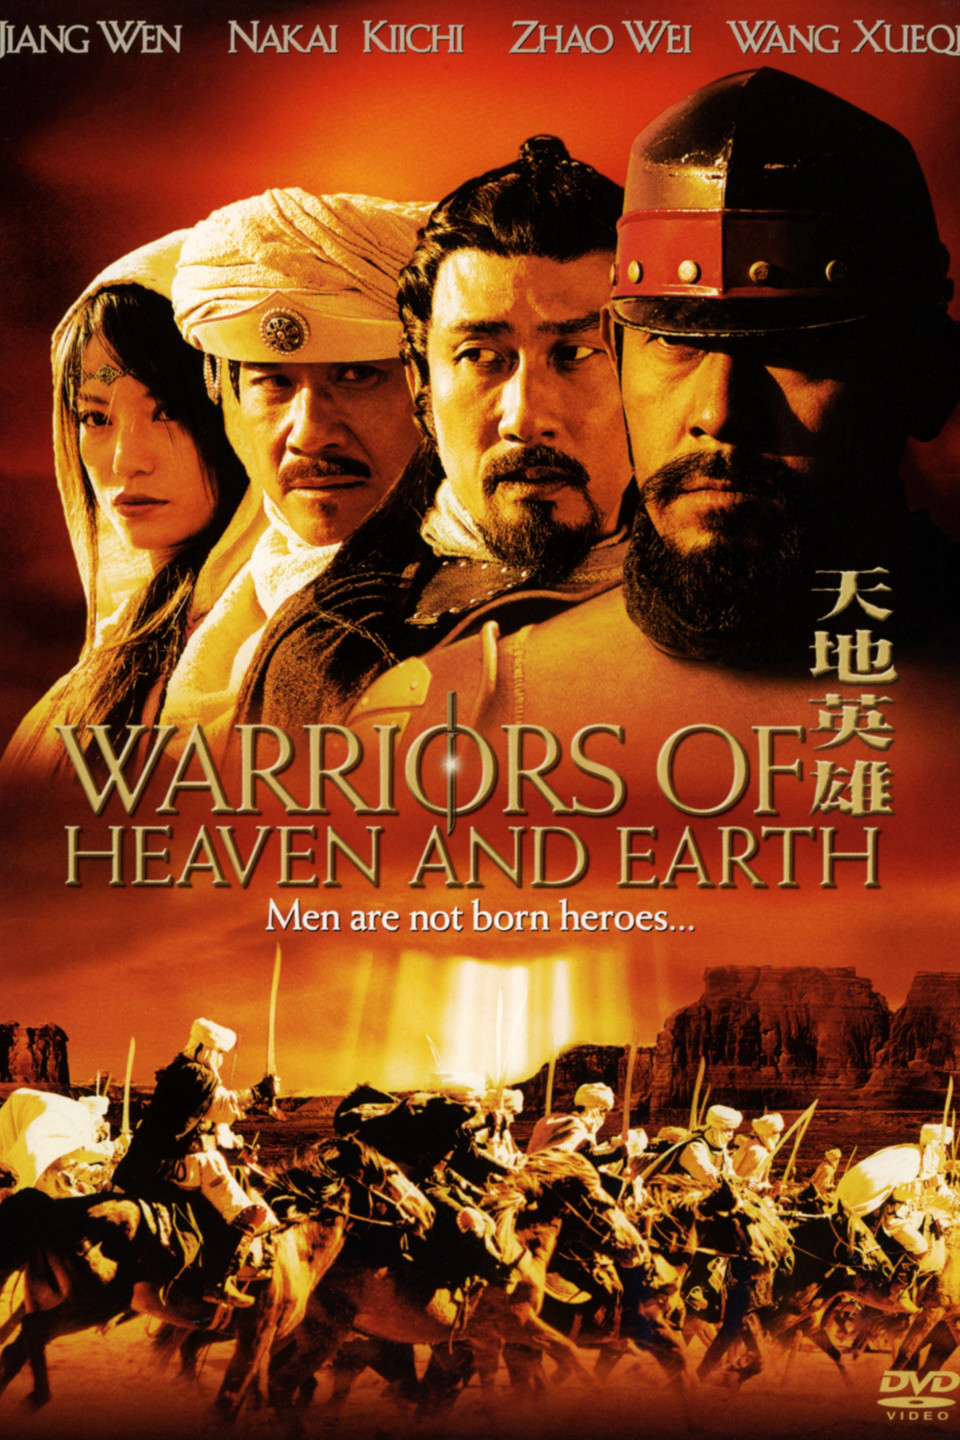 Warriors of Heaven and Earth (2003) Tagalog Dubbed